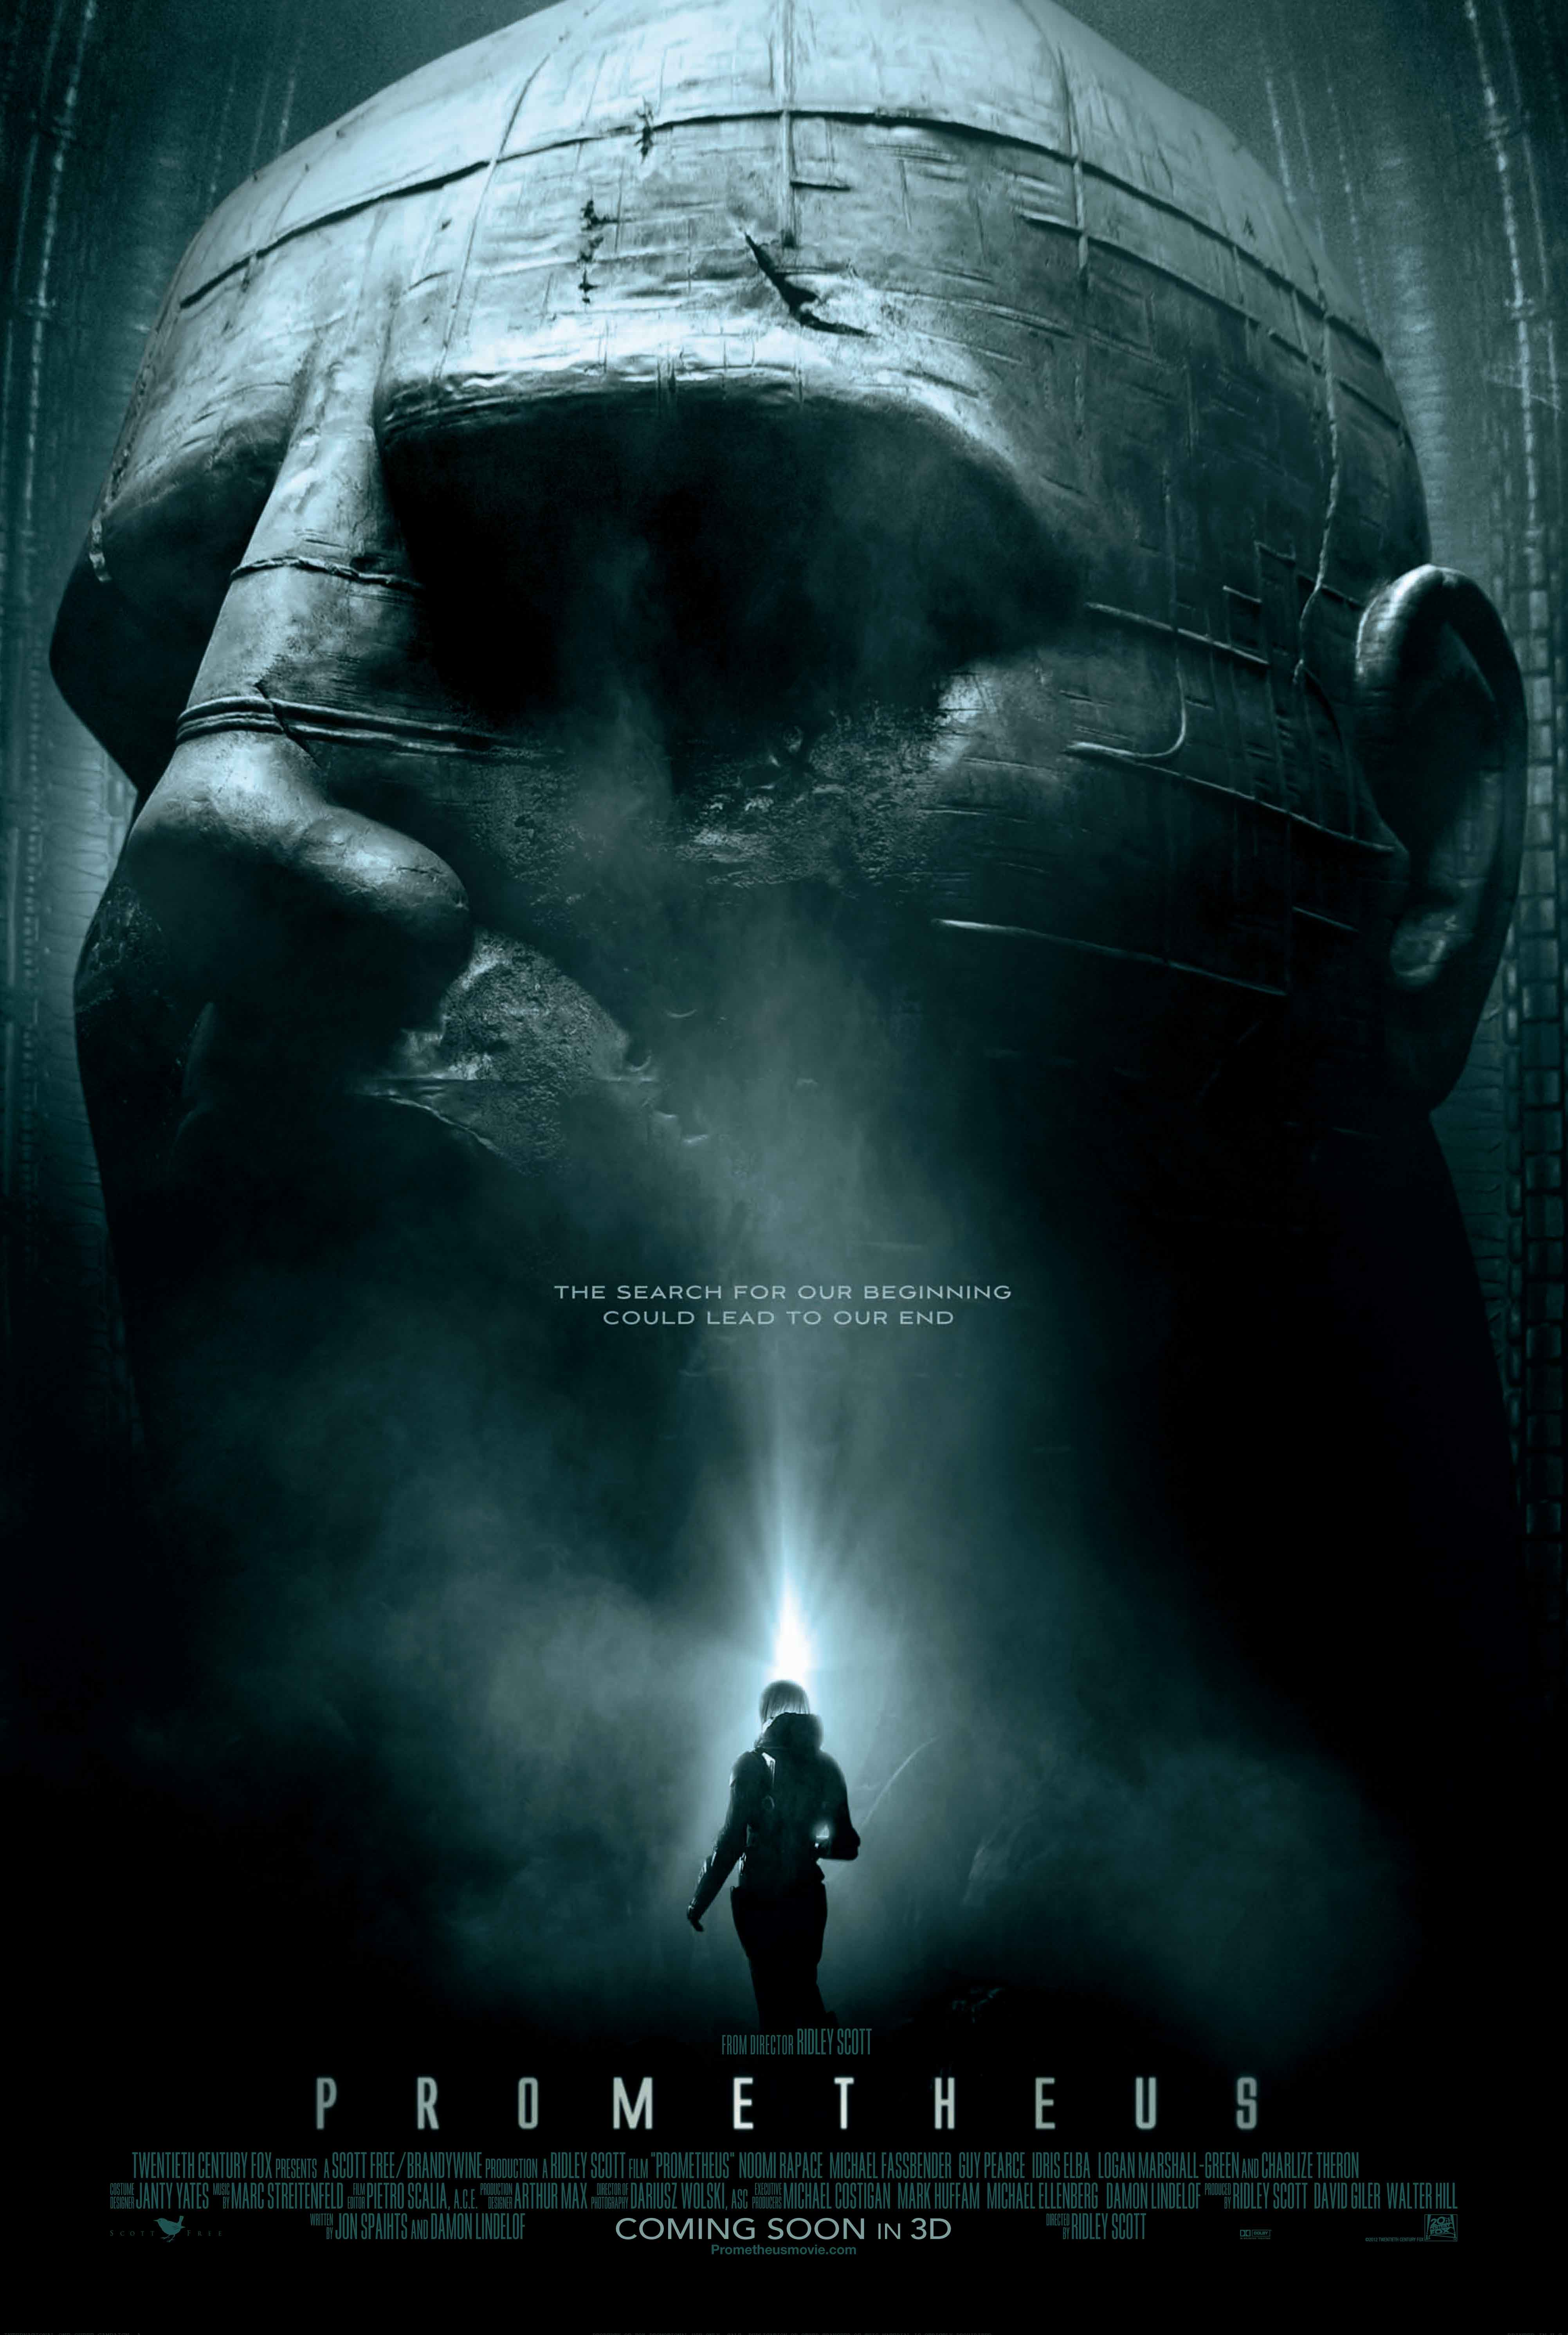 First Official Prometheus Poster